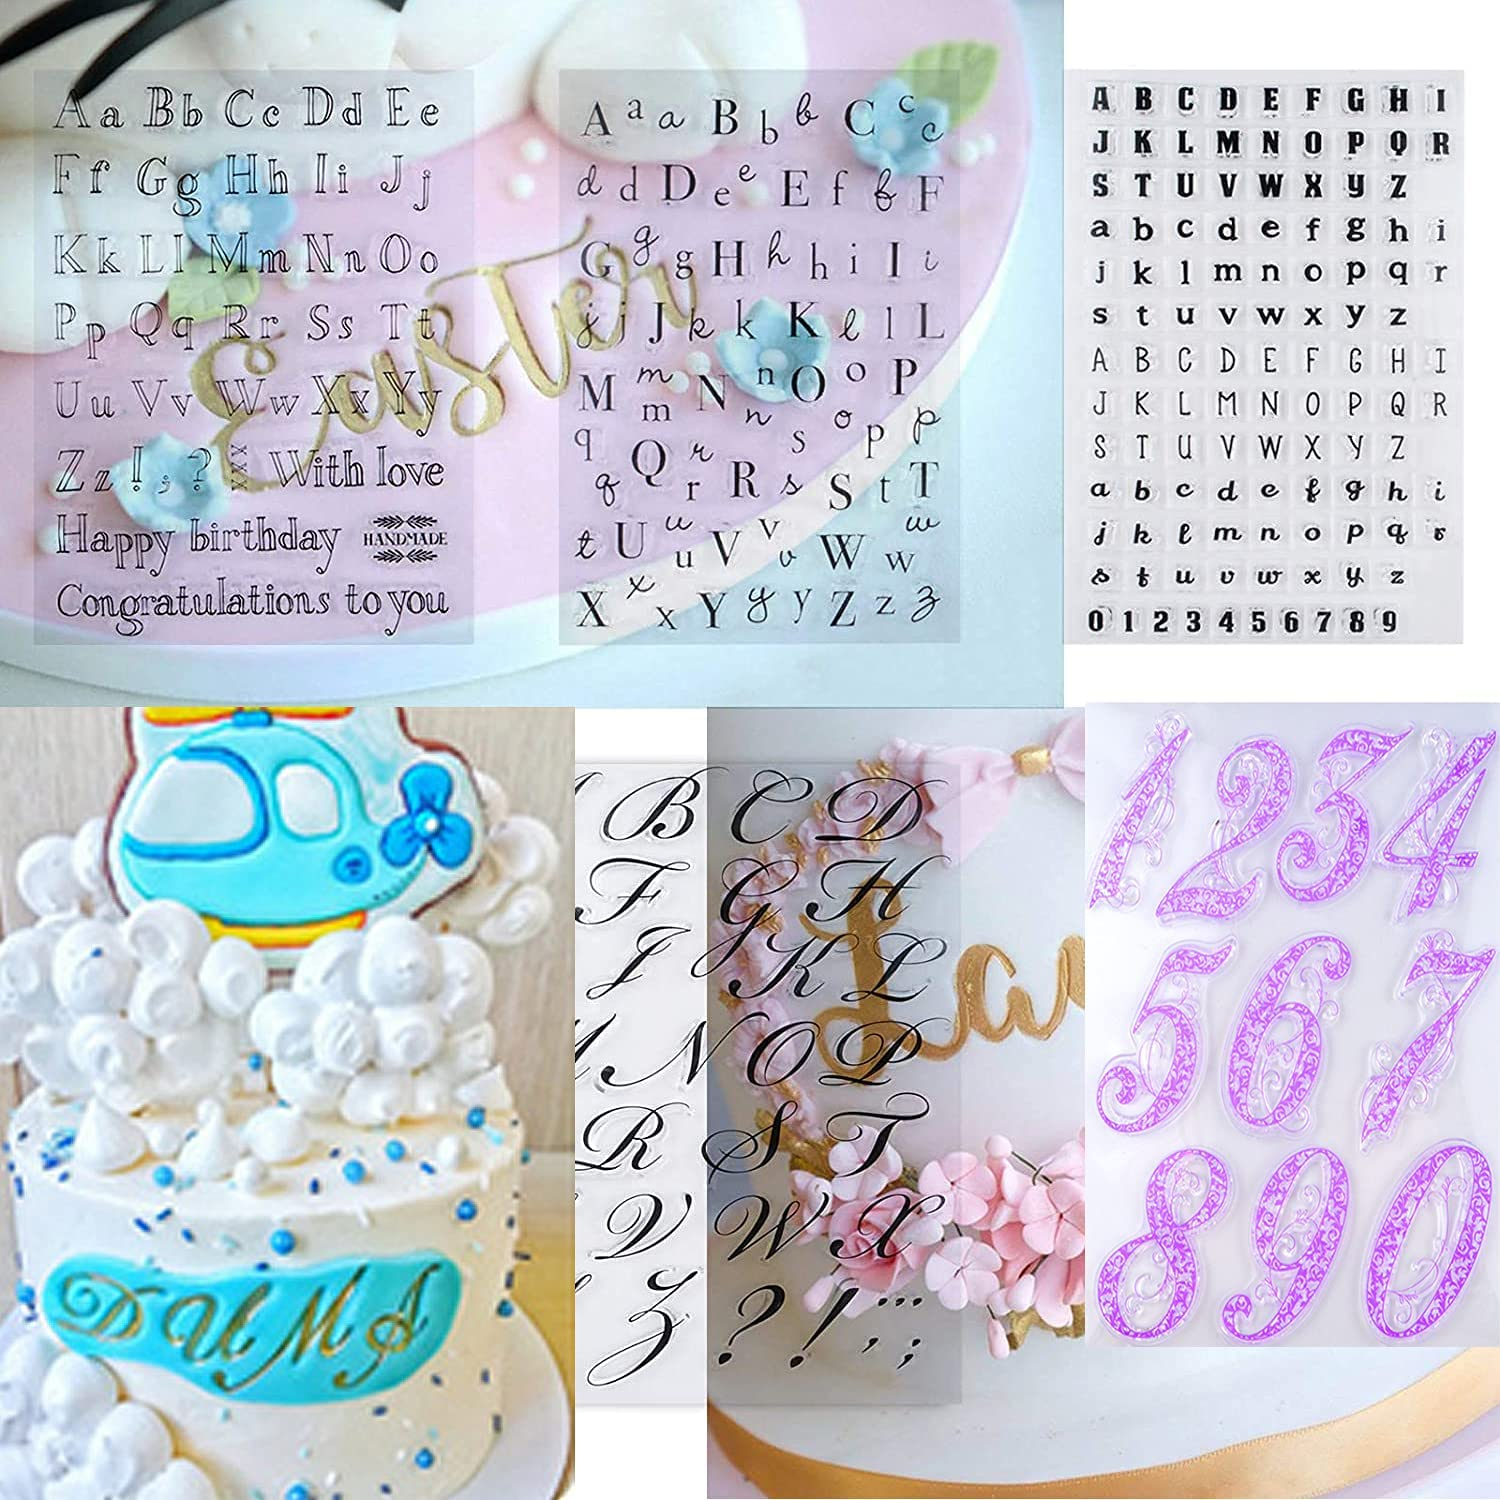 6 Pieces Alphabet Cake Easy-to-use Number Stamp Fondant Tool Miami Mall